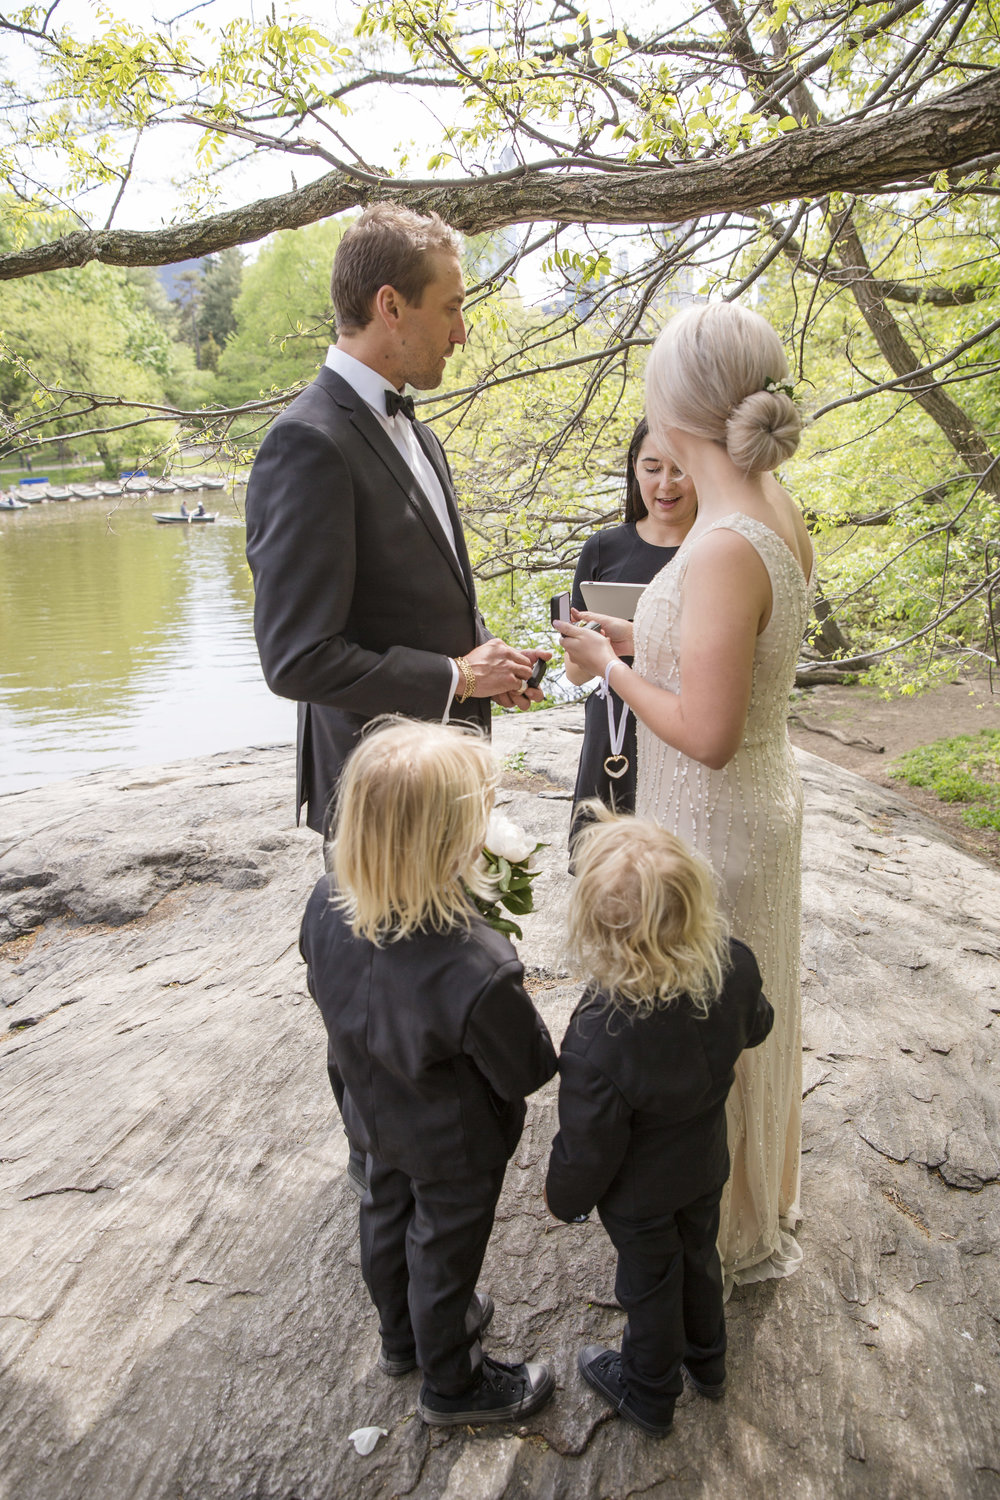 The sweetest family gathered together to exchange gifts during their wedding ceremony.